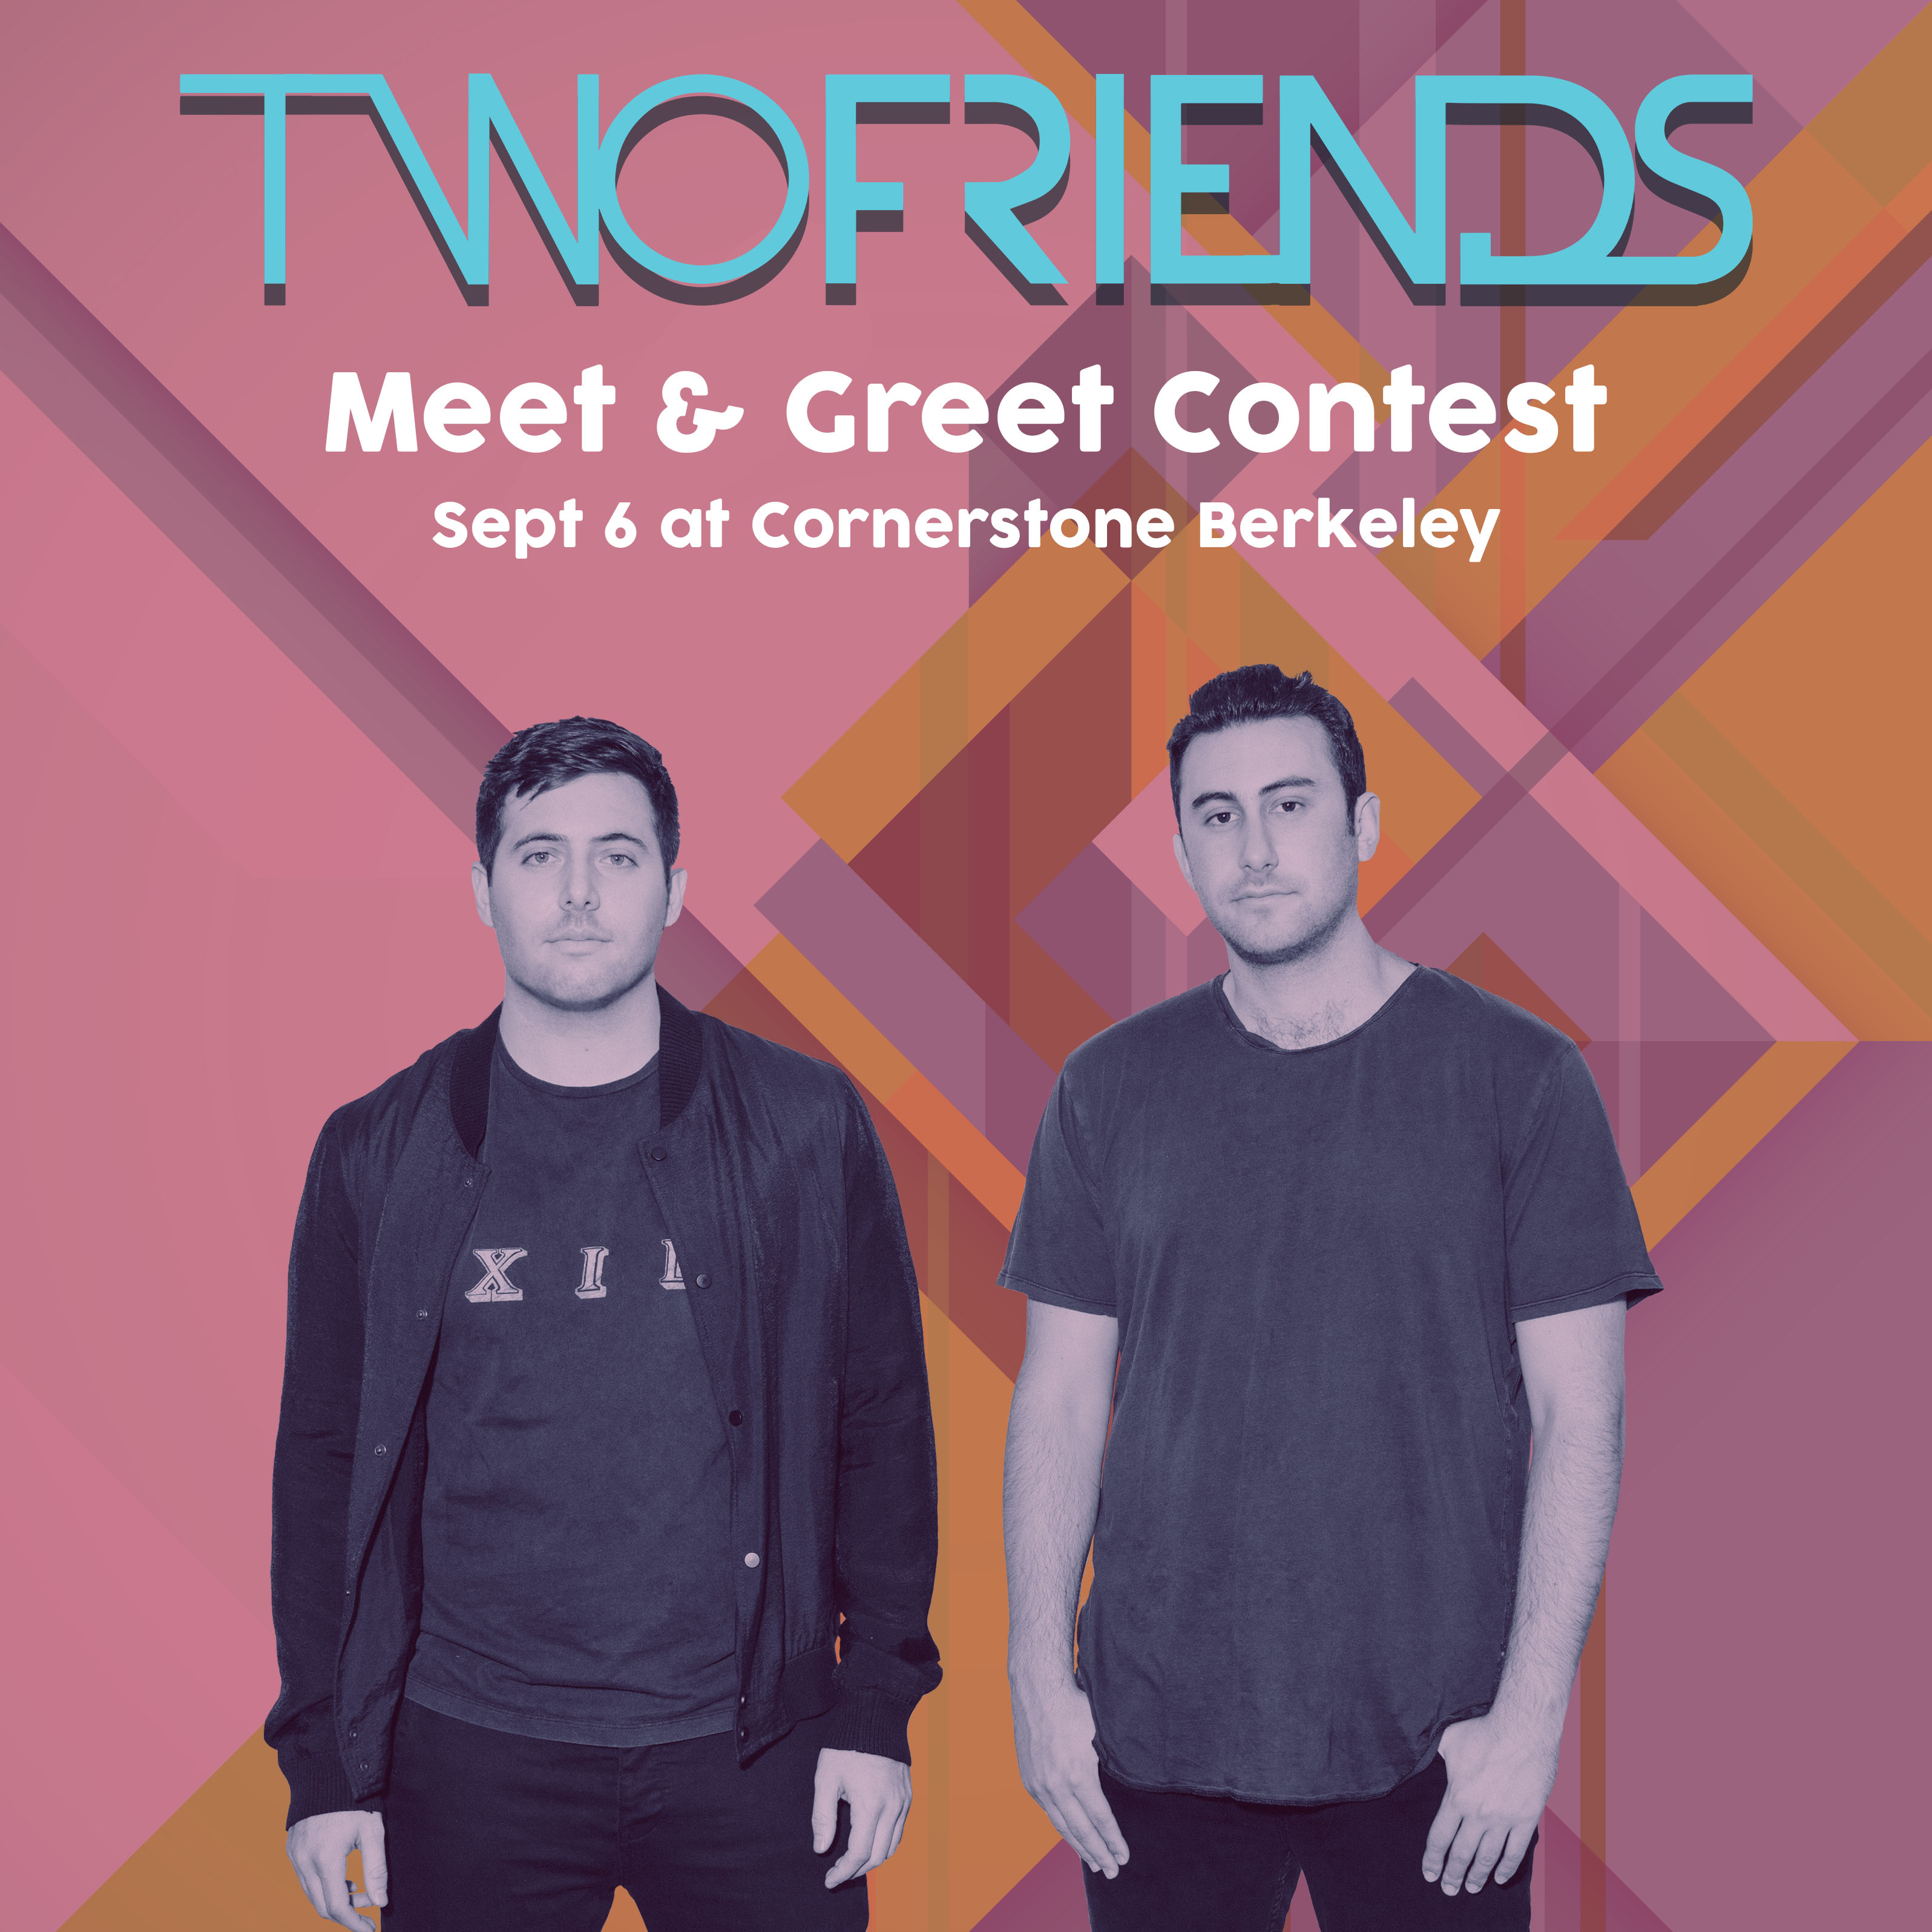 Two Friends Berkeley Sept 6 Meet And Greet Contest Enter To Win On